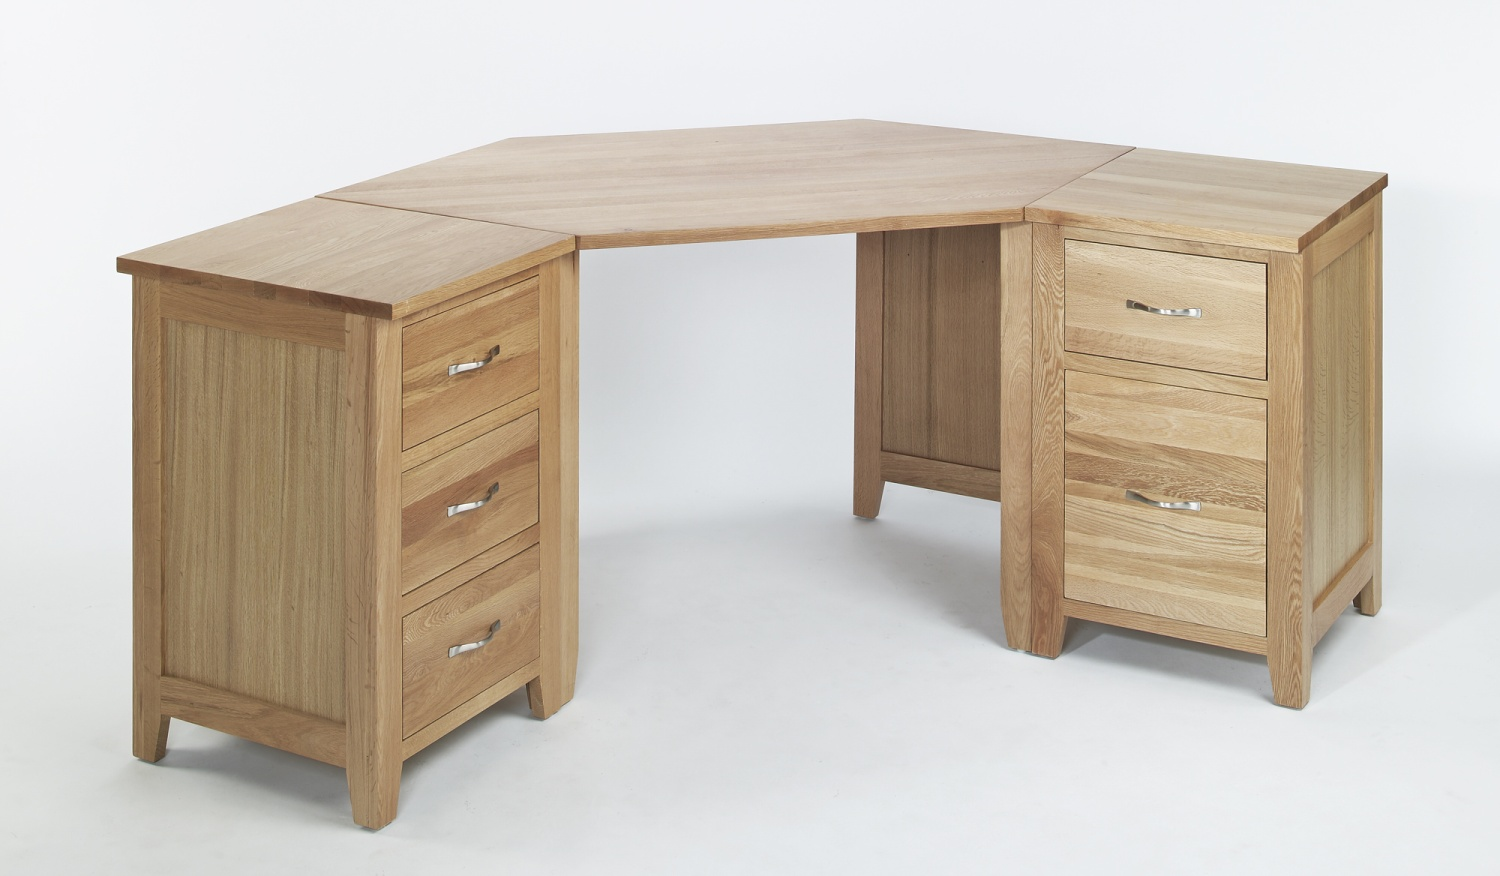 Compton solid oak furniture corner office pc computer desk for Solid oak furniture